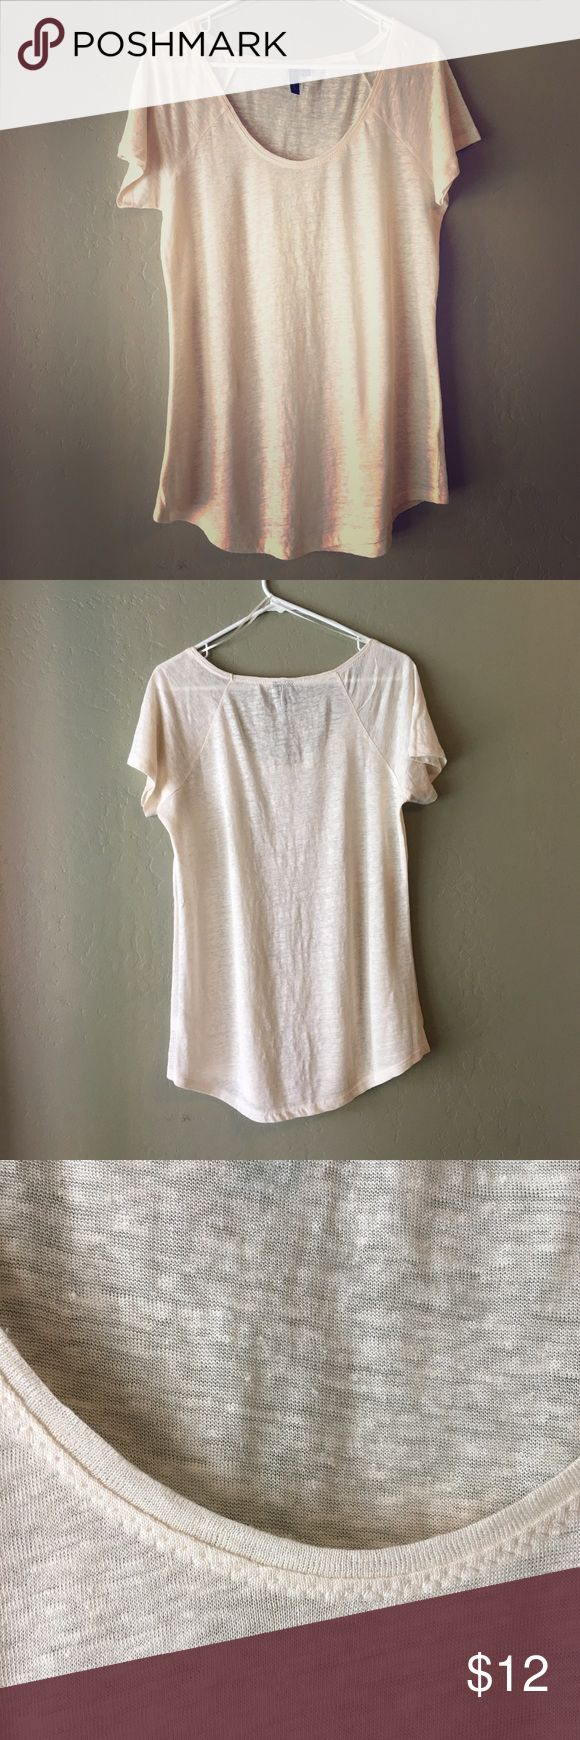 NWOT Cynthia Rowley Linen Short Sleeve Tee Shirt New without tags's Cynthia Rowley short sleeve 100% linen T-shirt in women's size Large. Cute zigzag stitching around neck line and hems, marled look in a neutral cream color. I popped the tags off thinking I was going to wear it, but the color just does not go well with my skin tone. Lightweight, airy, and a great shirt for summer! Cynthia Rowley Tops Tees - Short Sleeve